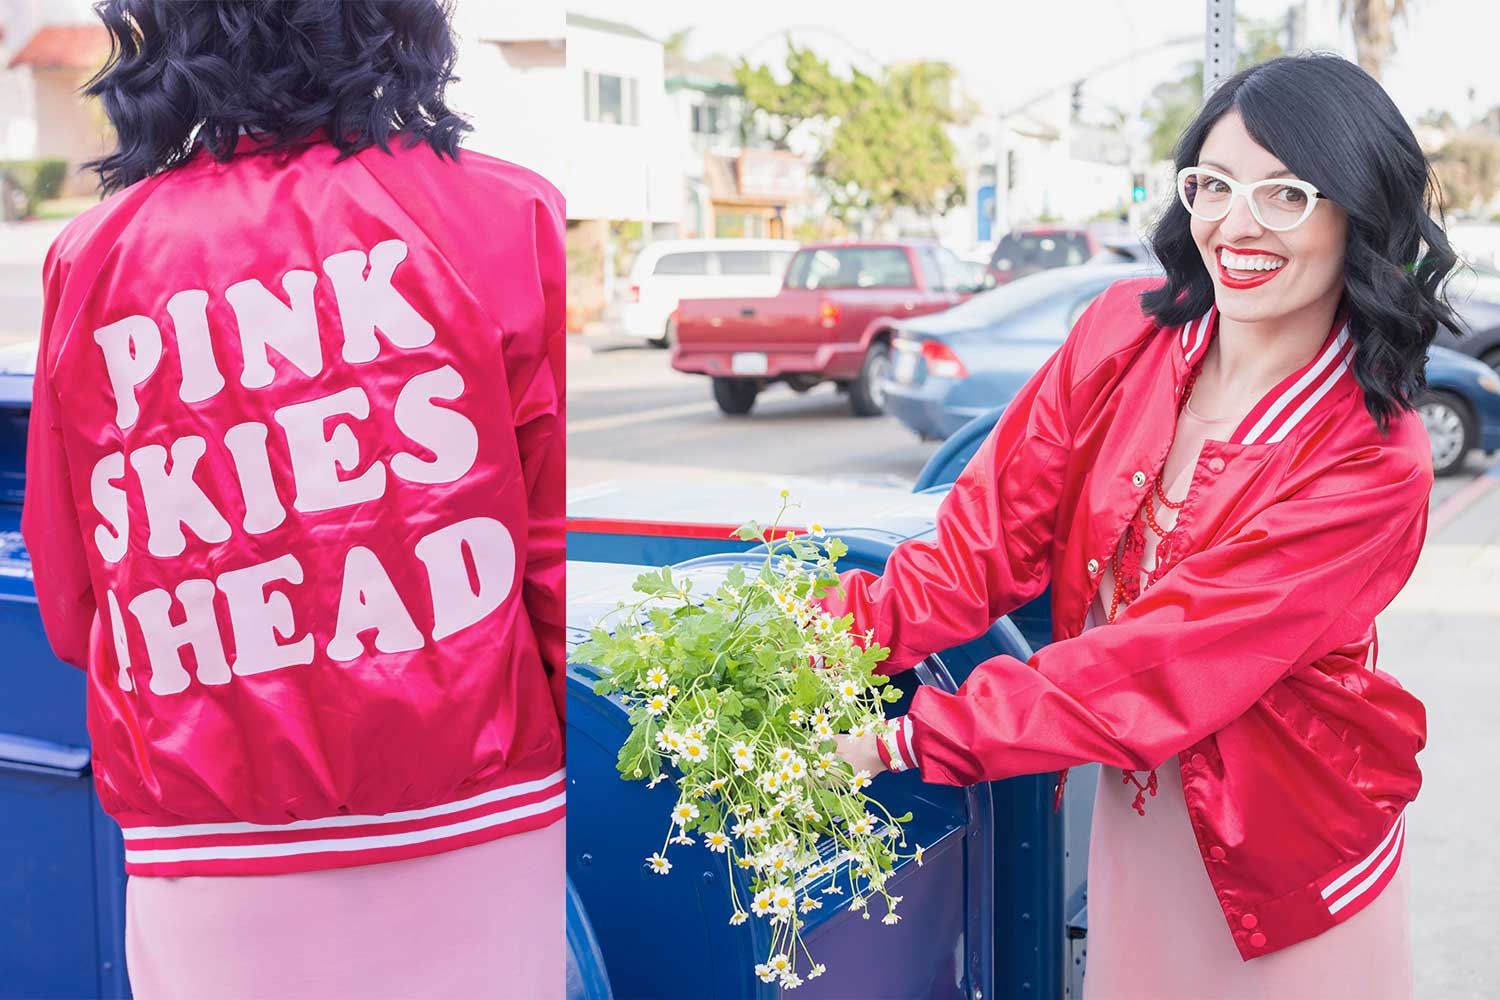 Jenna-Pilant-Lucky-Little-Mustardseed-Pink-Skies-Ahead-Bomber-Jacket-Pura-Sol-Photography-9